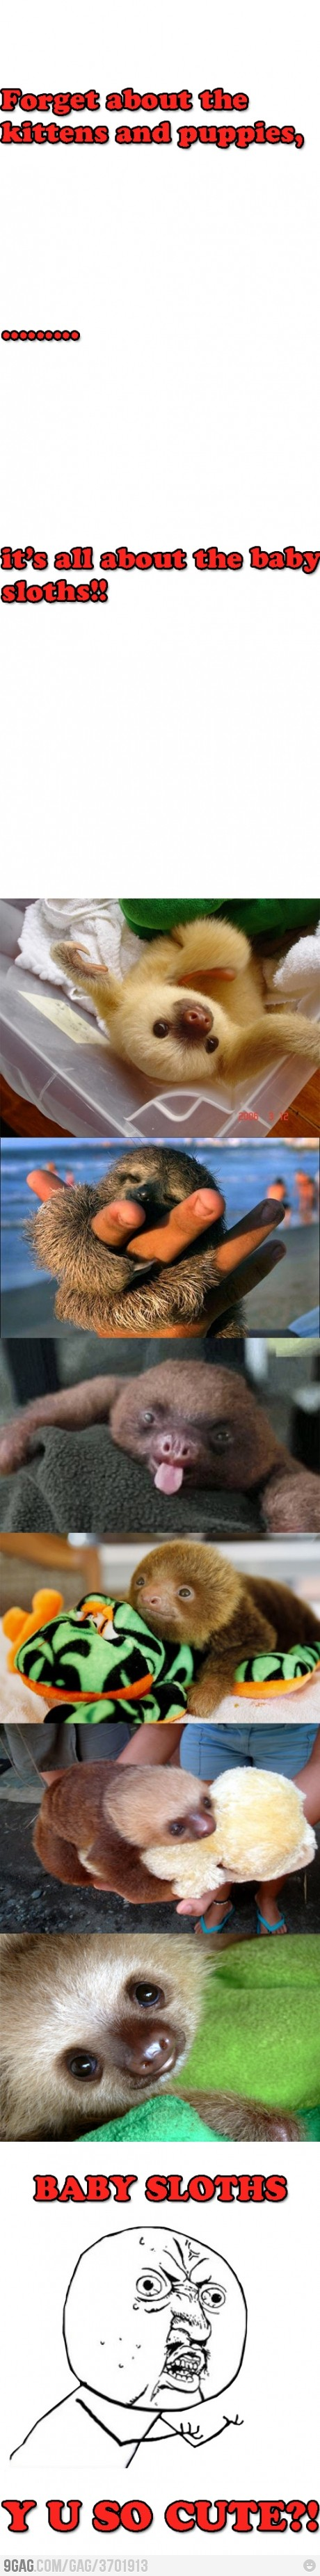 """""""Forget about the kittens and puppies…""""  Me: """"Yeah, whatever.""""  """"It's all about the baby sloths?""""  Me: """"The what now?"""" /8l  …  Me: /O0O\"""